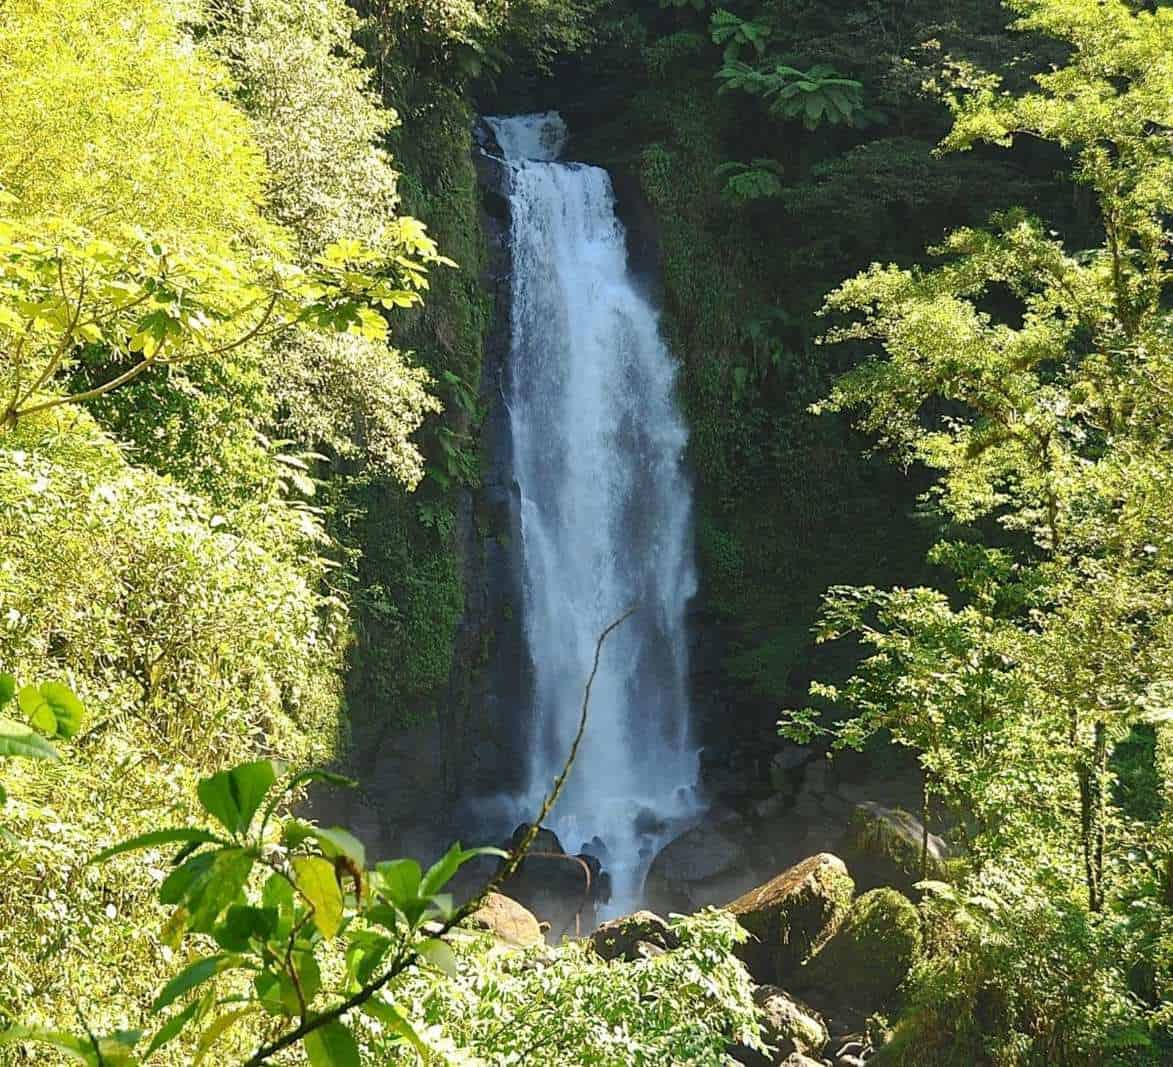 The first waterfall to view at Trafalgar Falls on your cruise to Dominica.